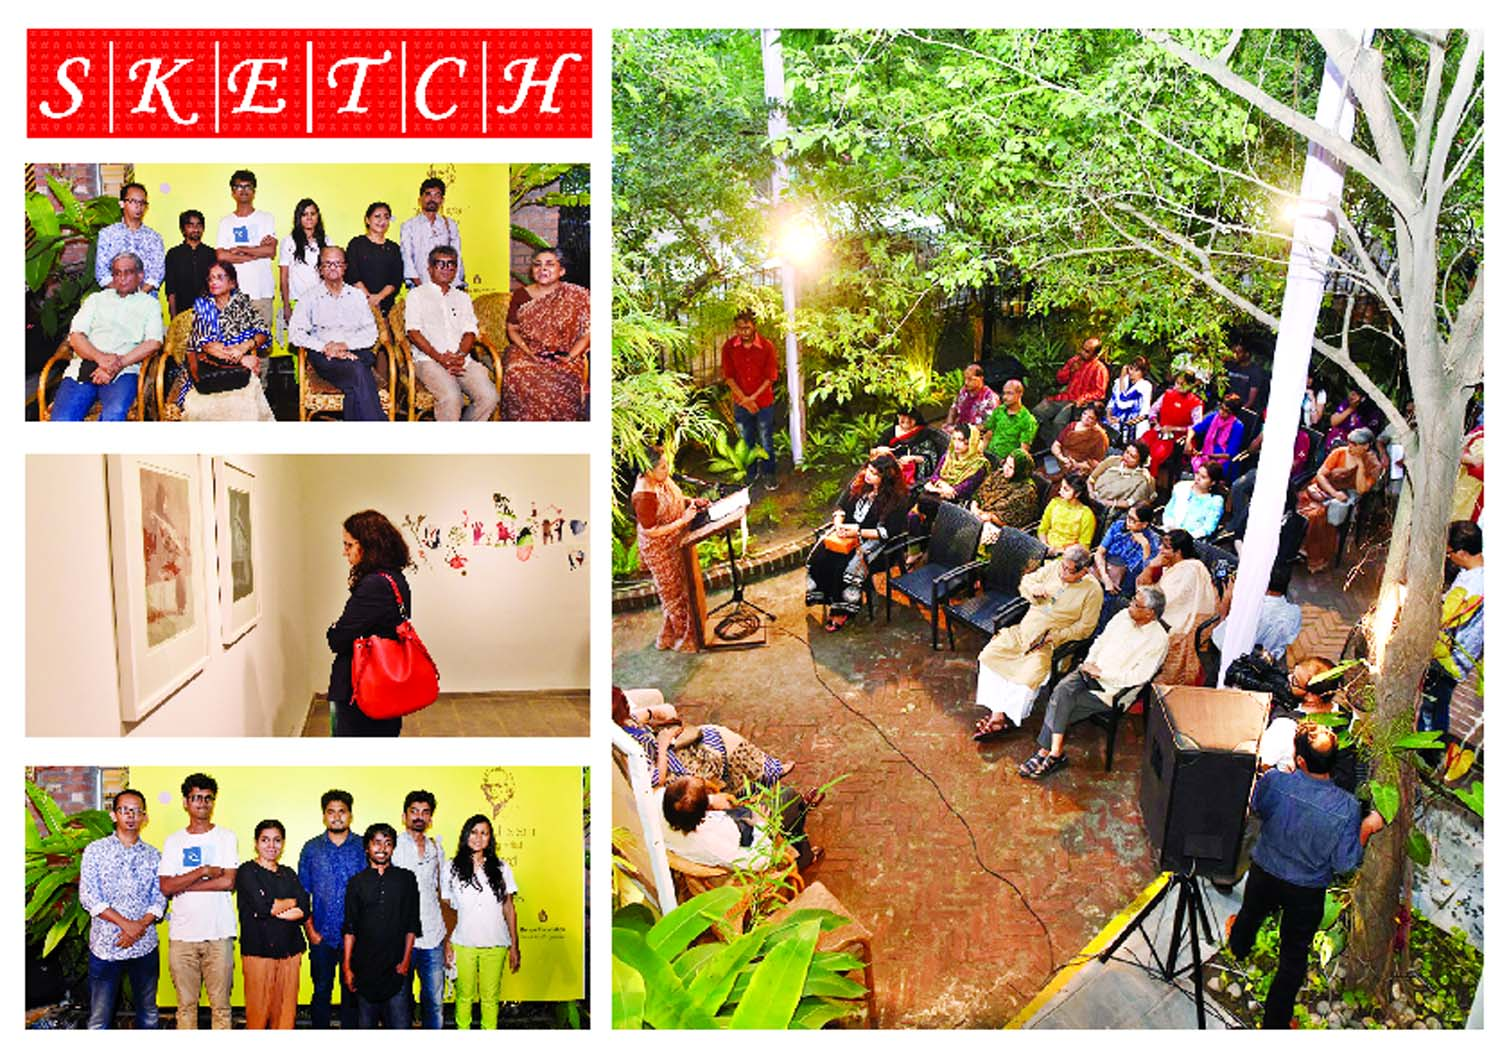 Aminul Islam Young Artist Award given, Open Studio held